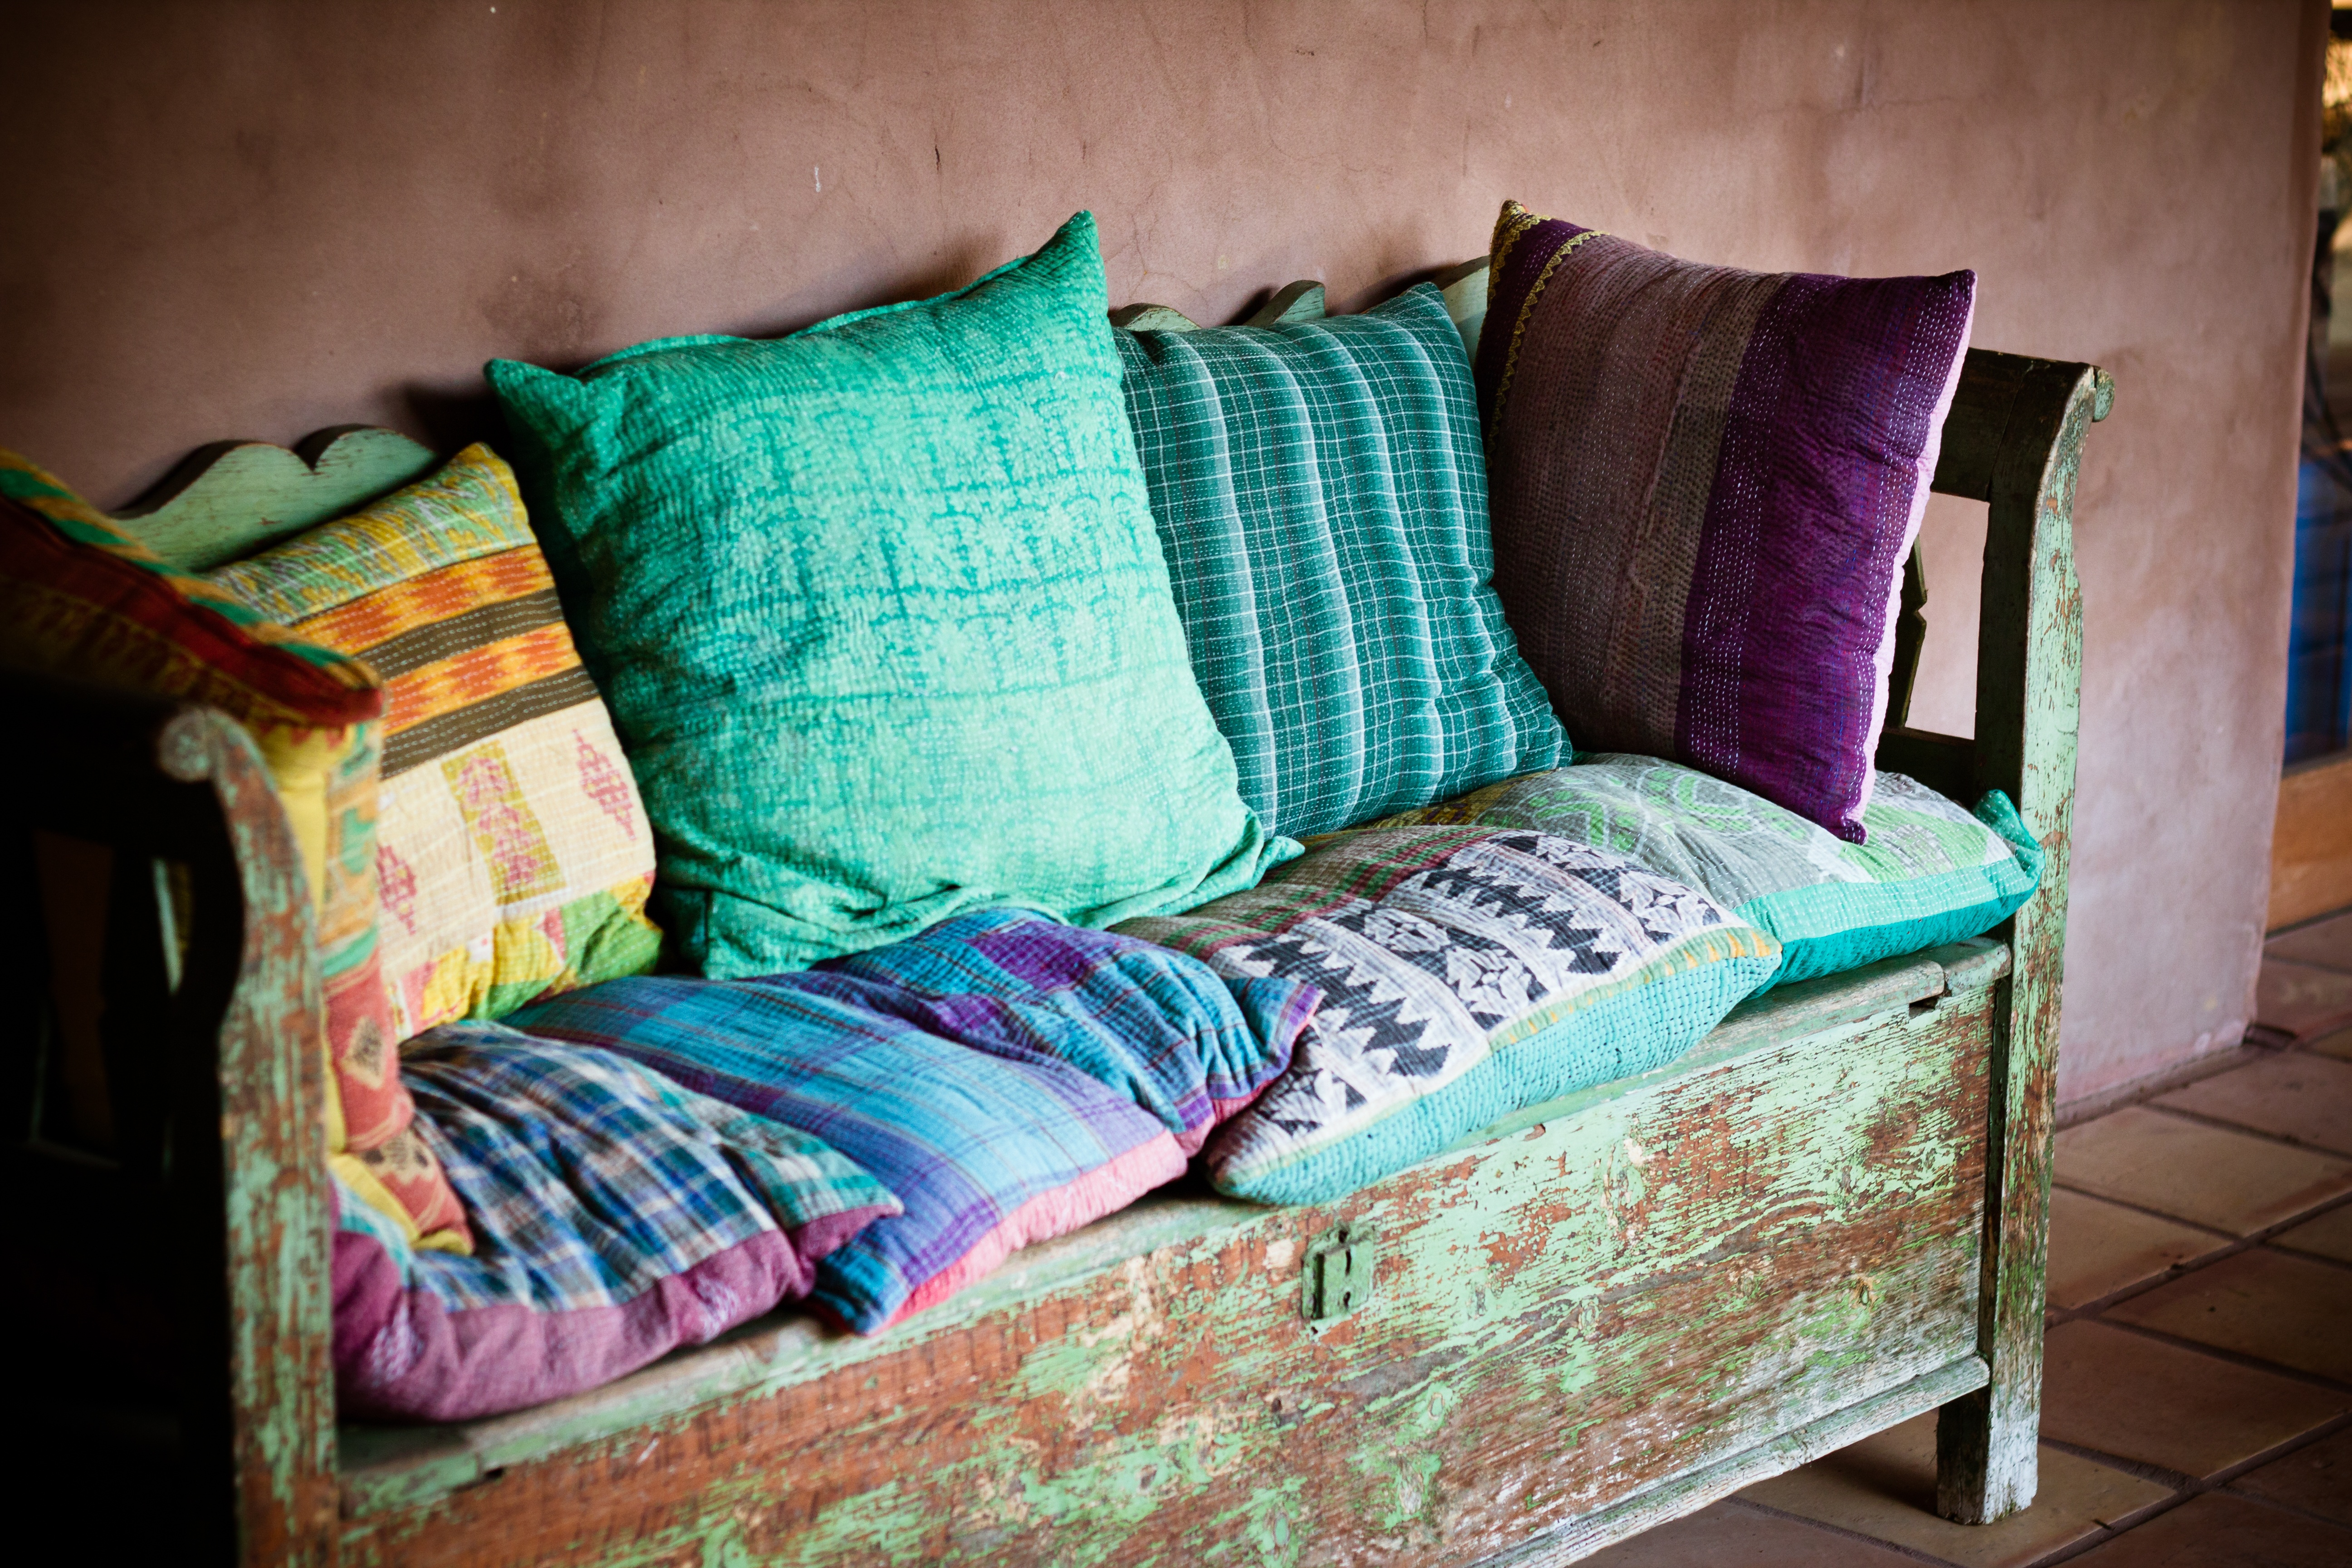 Prime Colorful Pillows Decor Old Wood Bench Free Image Alphanode Cool Chair Designs And Ideas Alphanodeonline